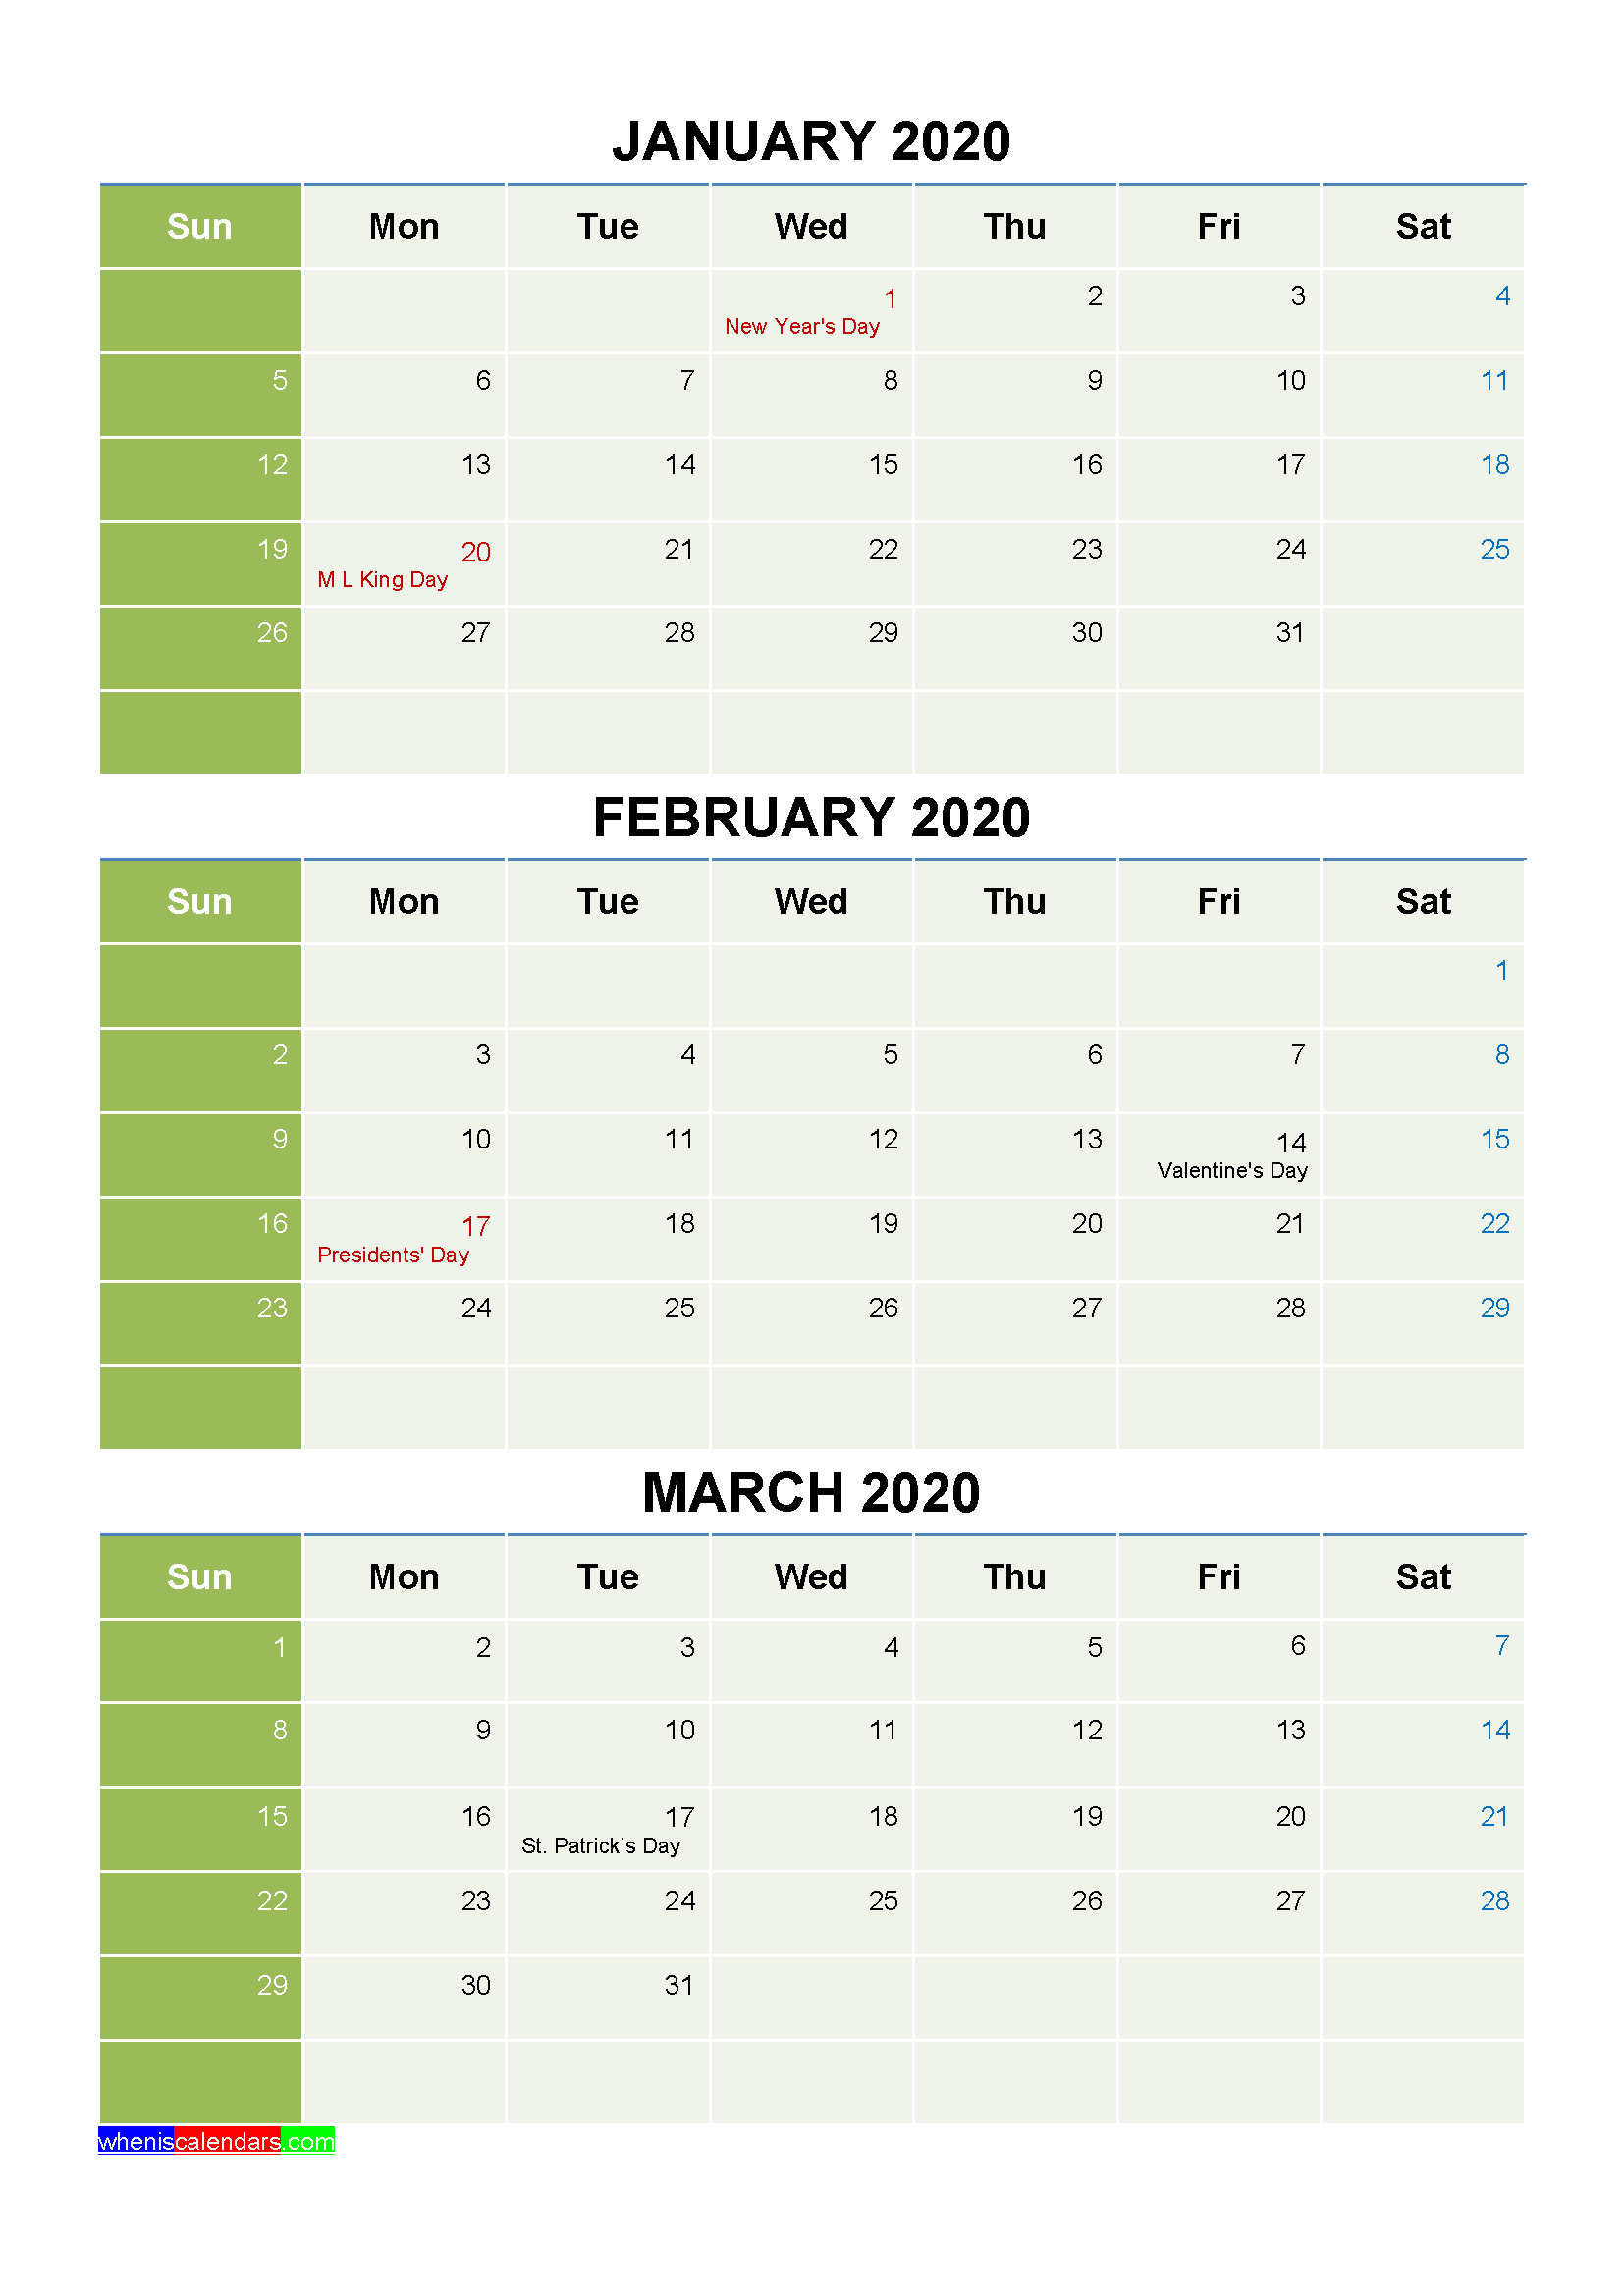 Free Calendar January February March 2020 with Holidays